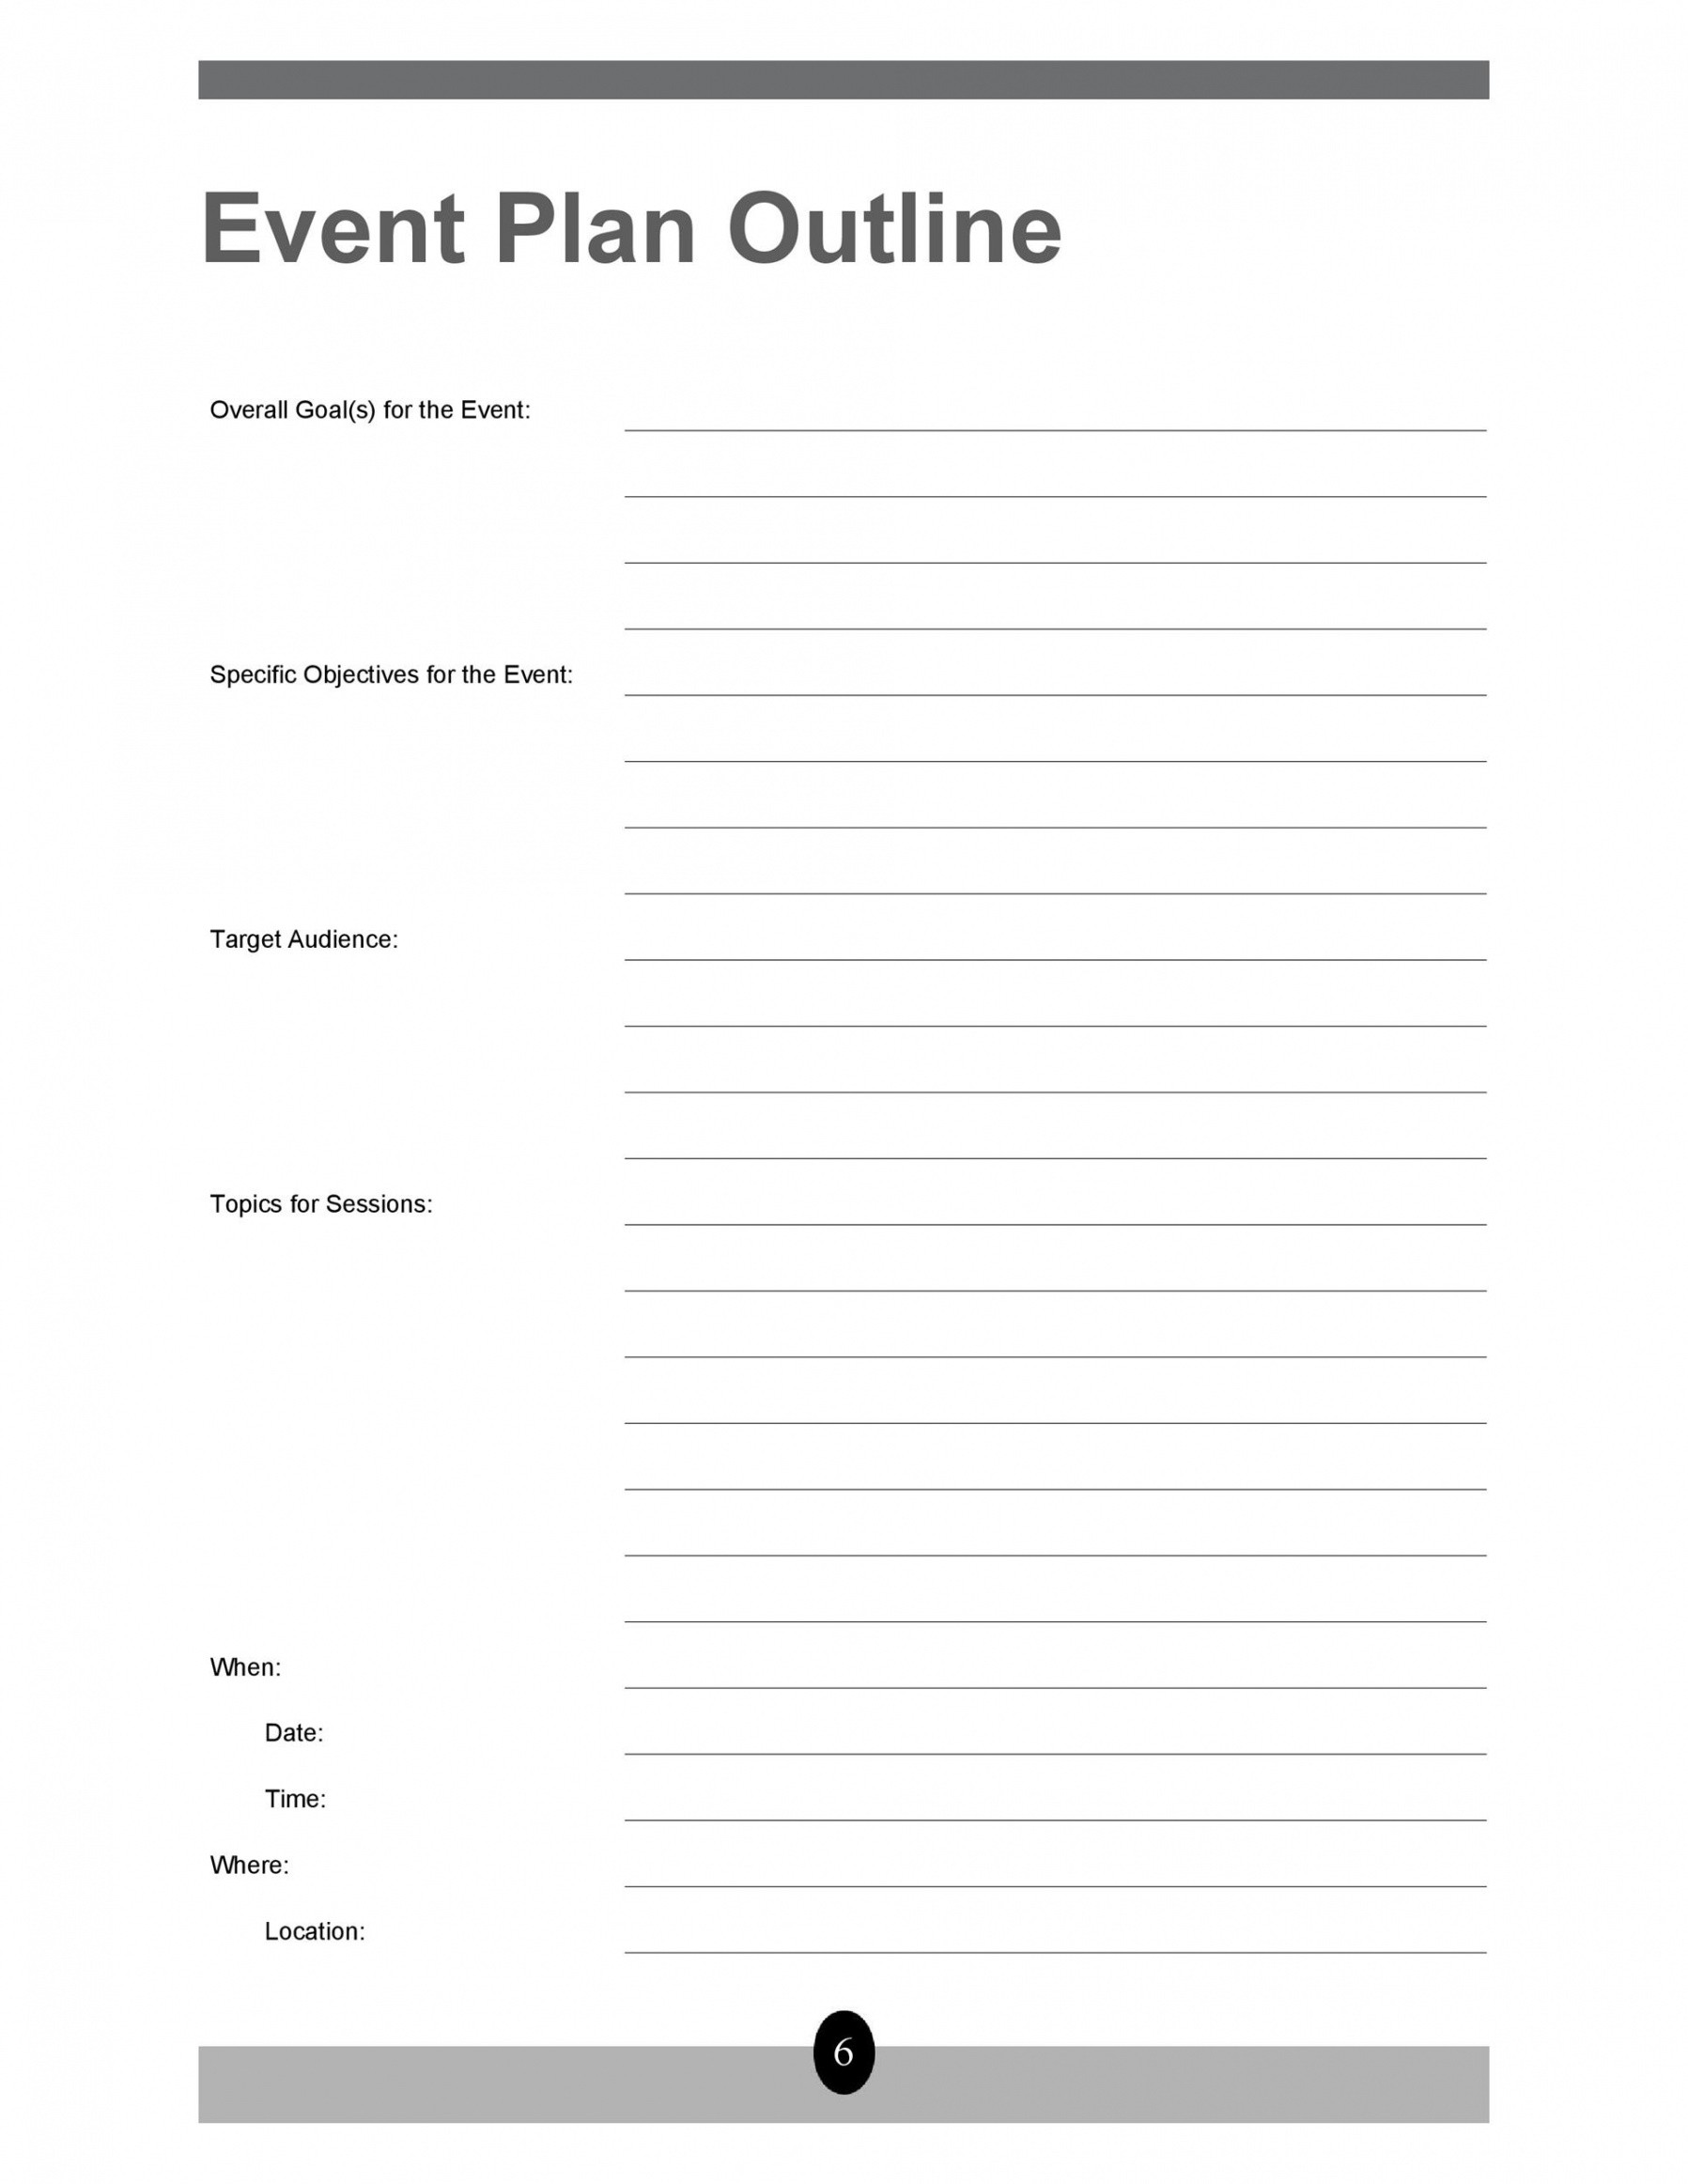 free event planning outline template excel example